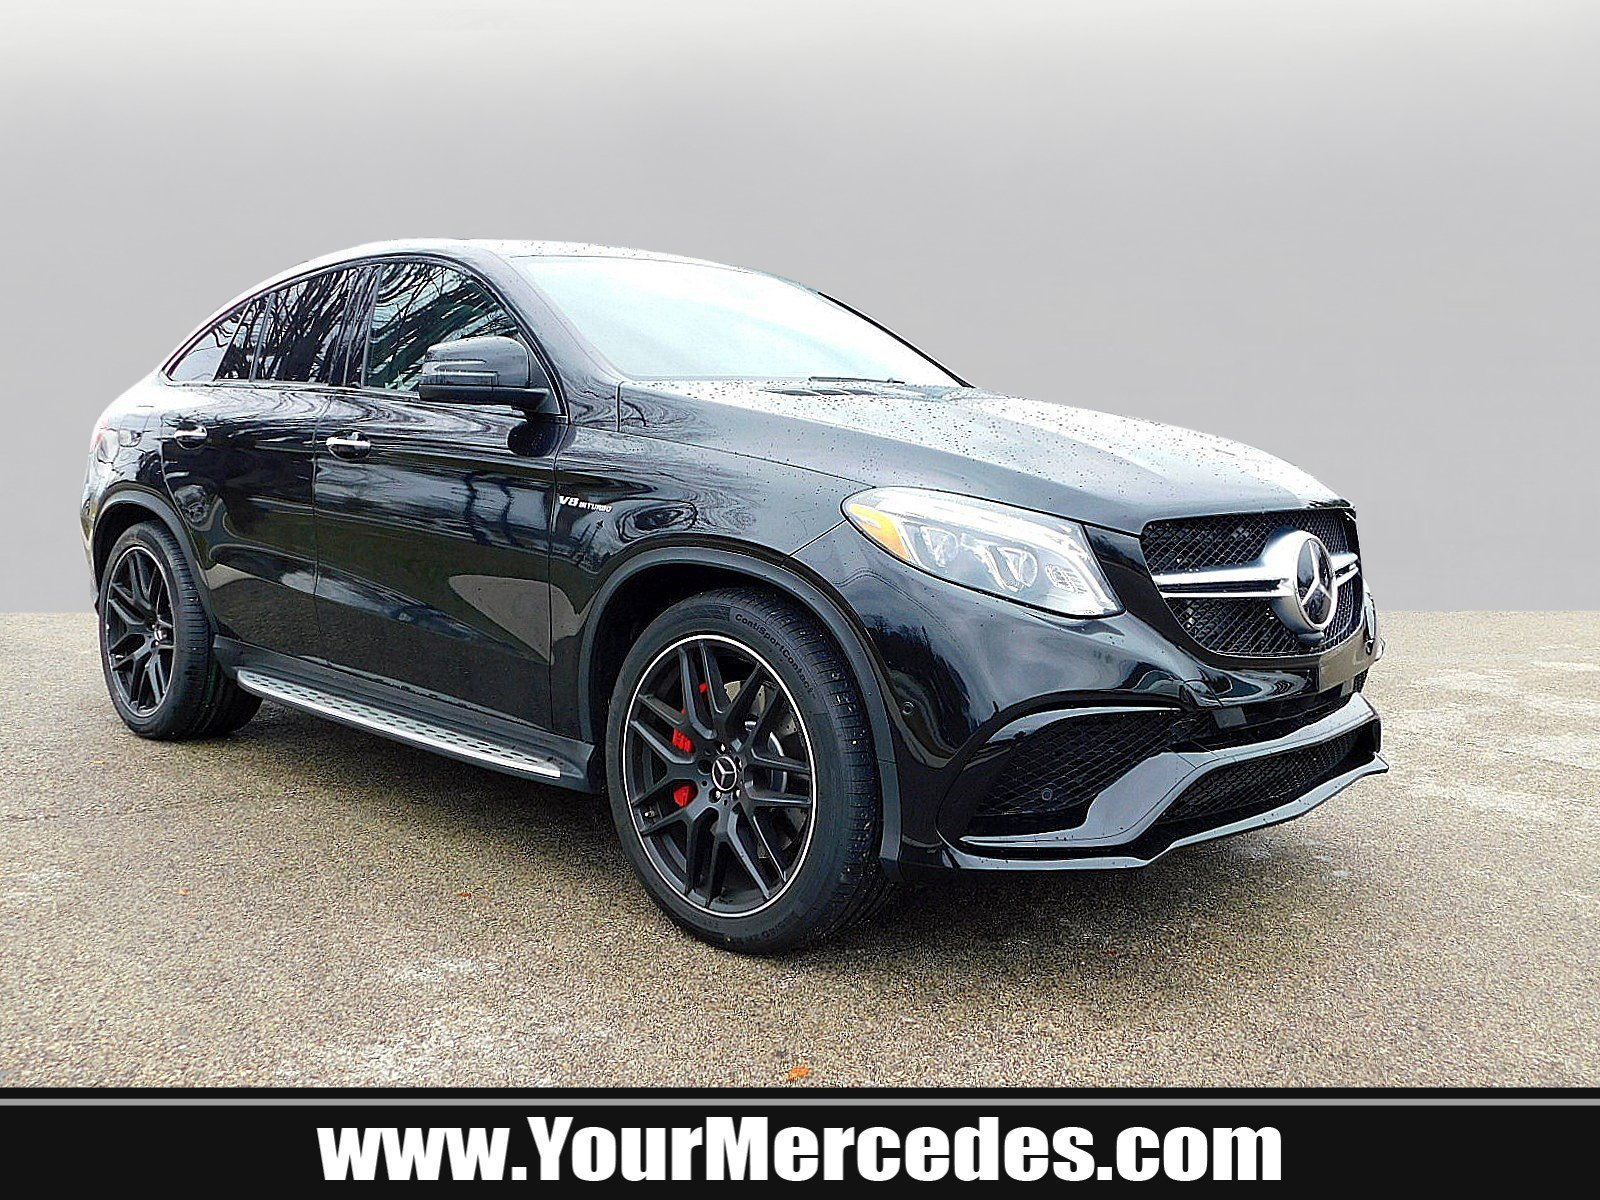 Pre Owned 2018 Mercedes Benz GLE GLE 63 S AMG Coupe Coupe in West